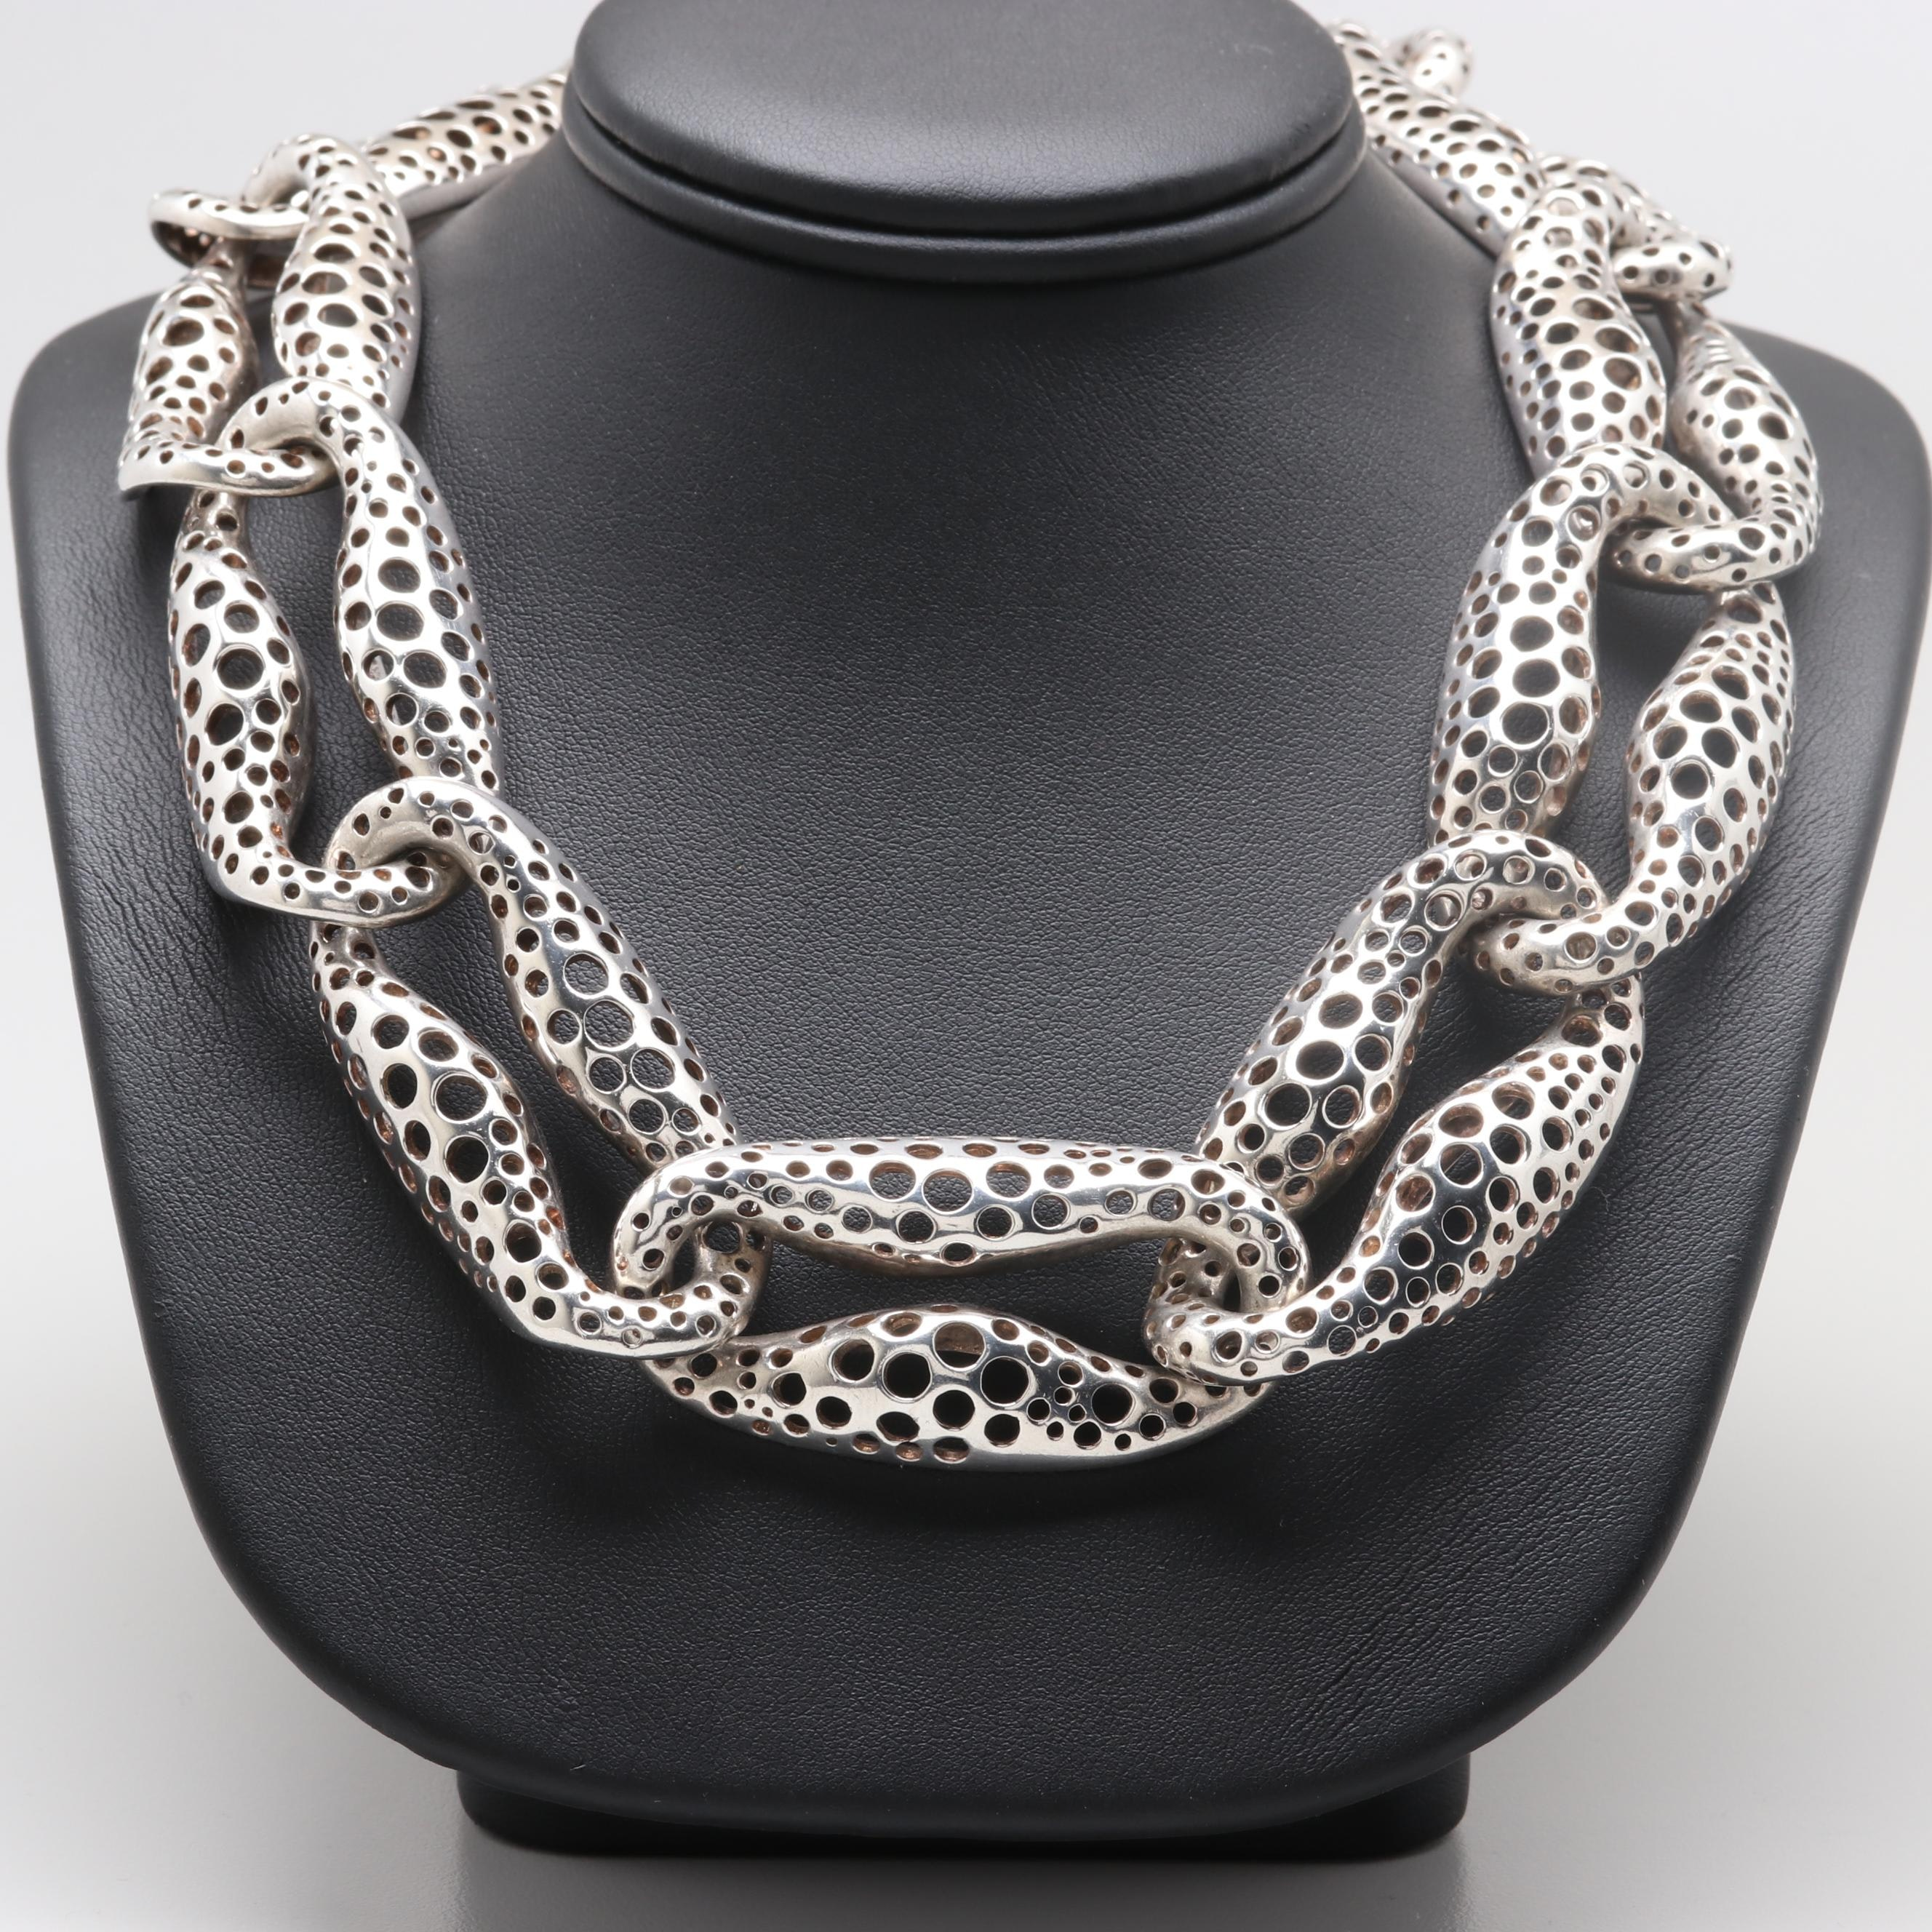 Vintage Angela Cummings Sterling Silver Perforated Link Necklace